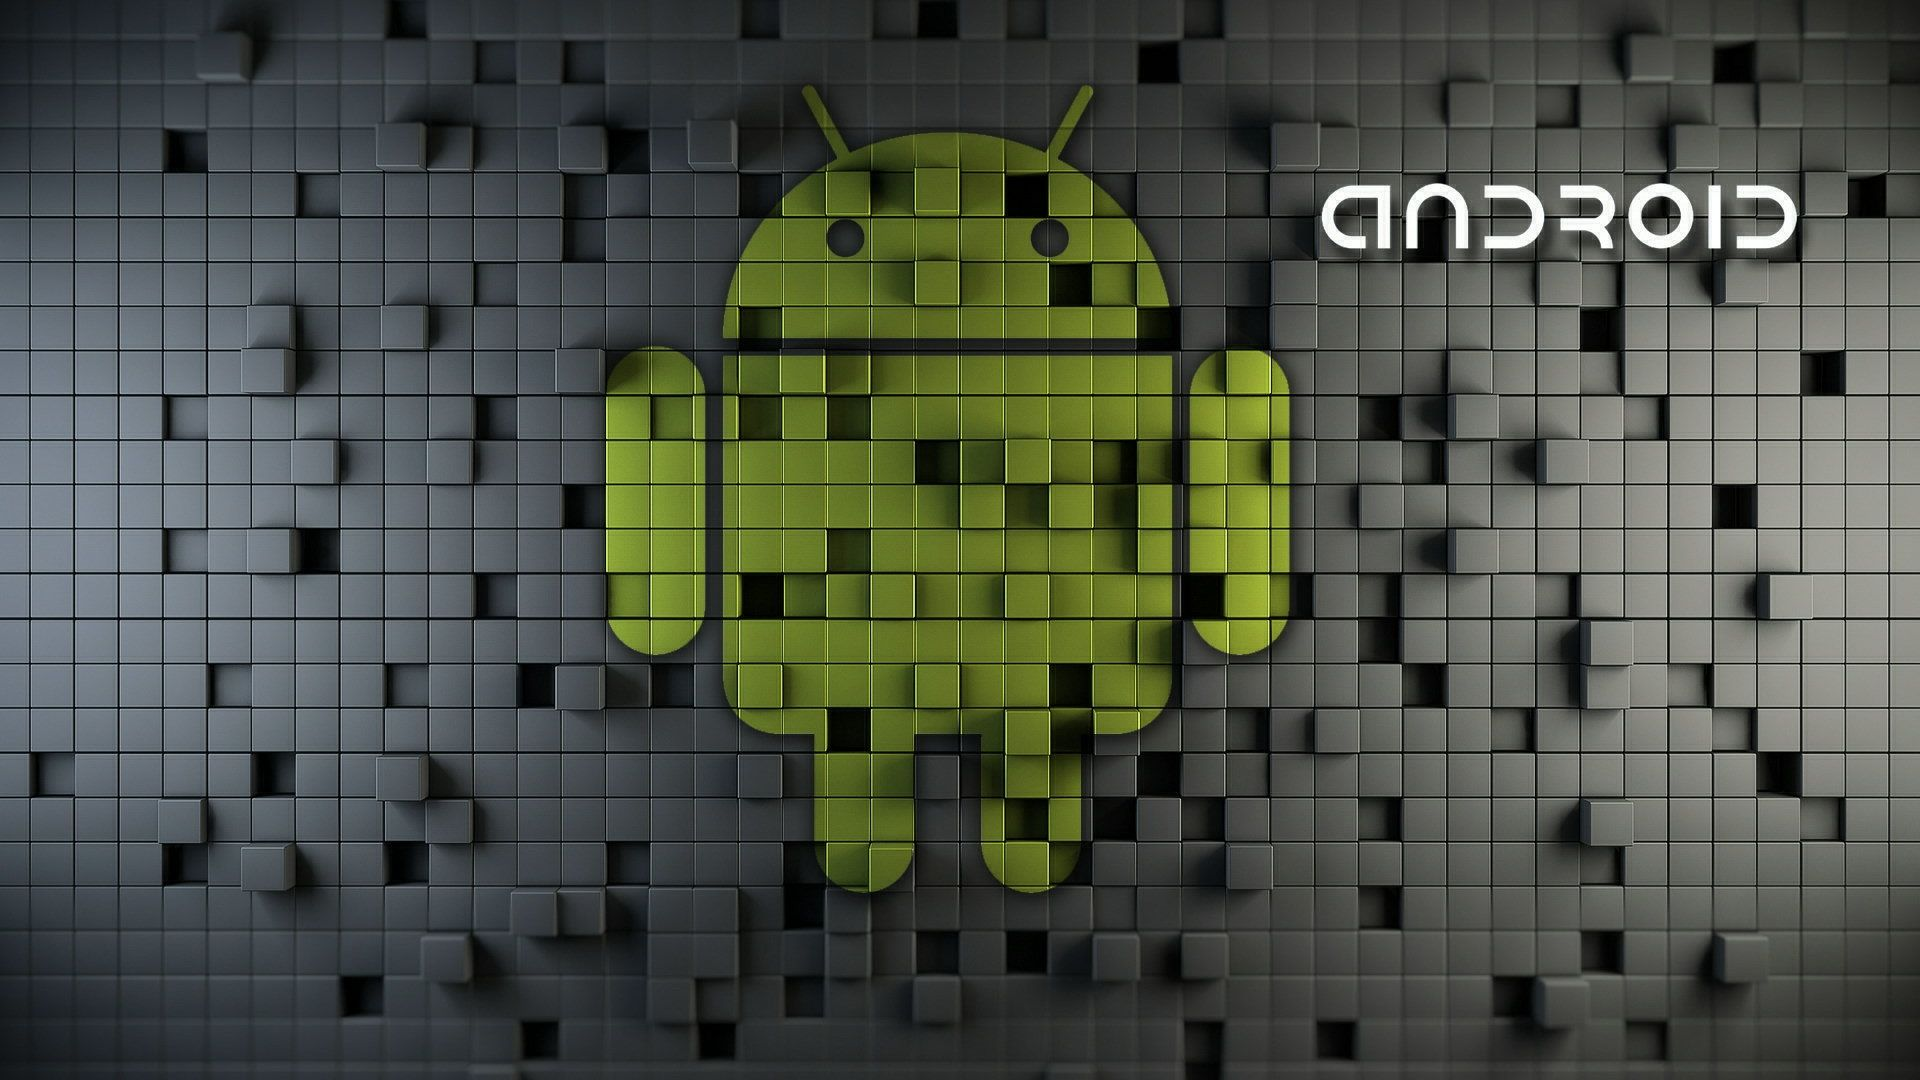 Hd android robot design desktop wallpapers Android app